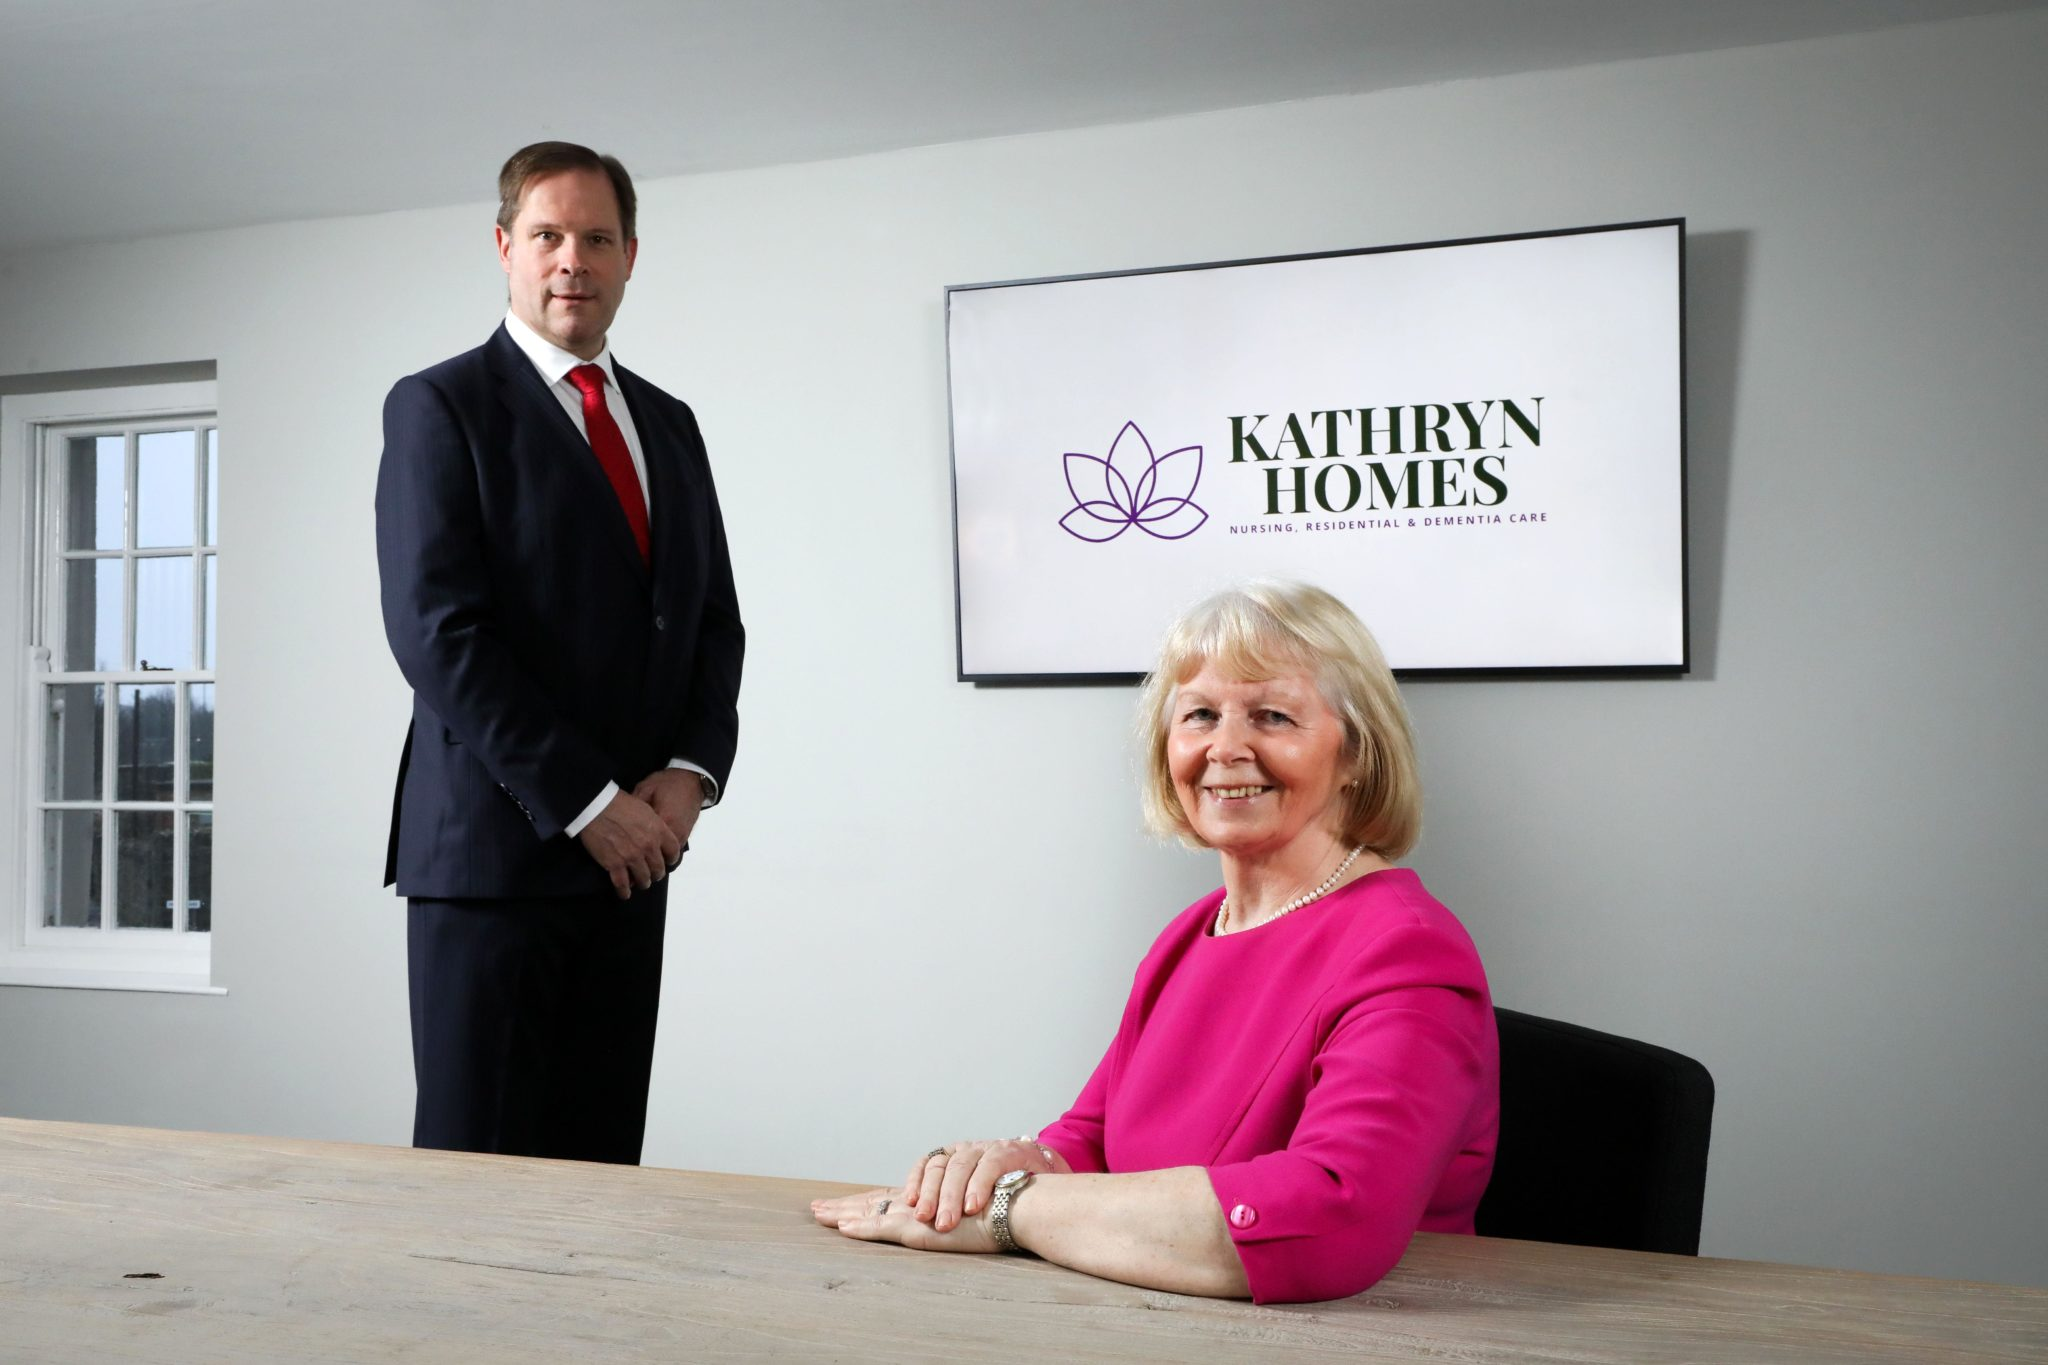 LOCAL BOARD APPOINTED TO OVERSEE PORTFOLIO OF 12 CARE HOMES IN NORTHERN IRELAND